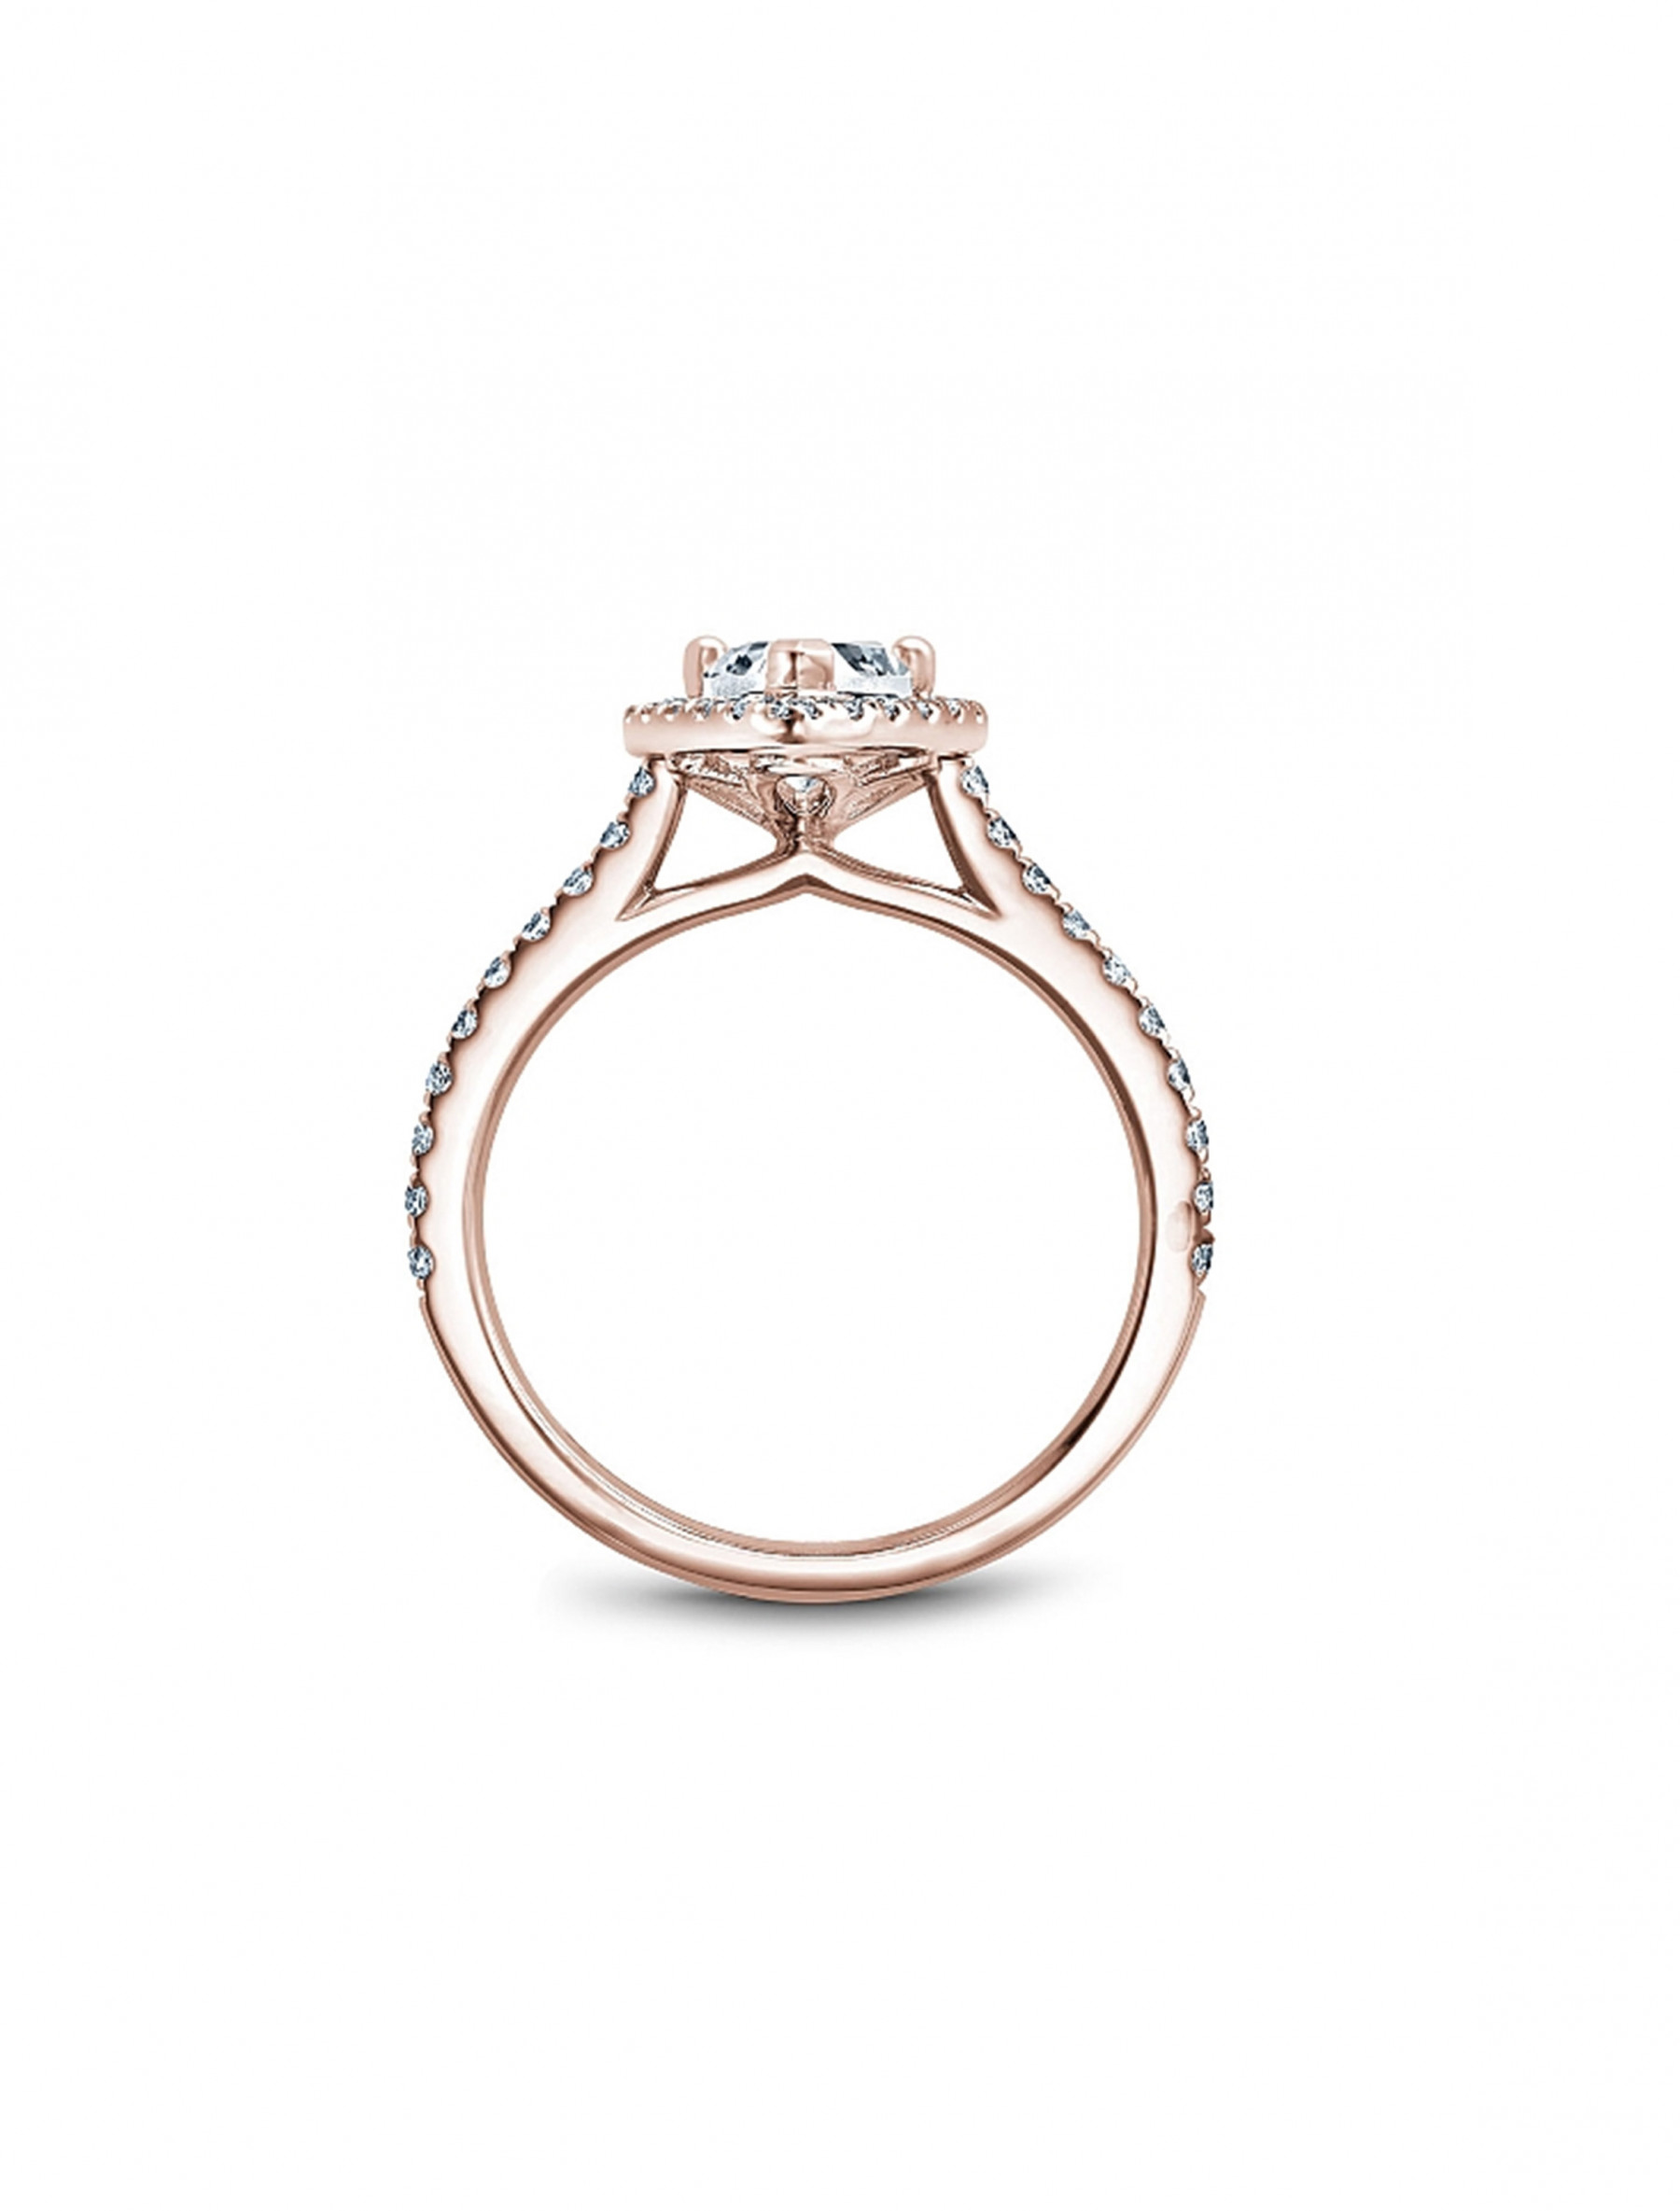 Noam Carver Pear Pave Diamond Halo Engagement Ring Setting in 14K Rose Gold side view